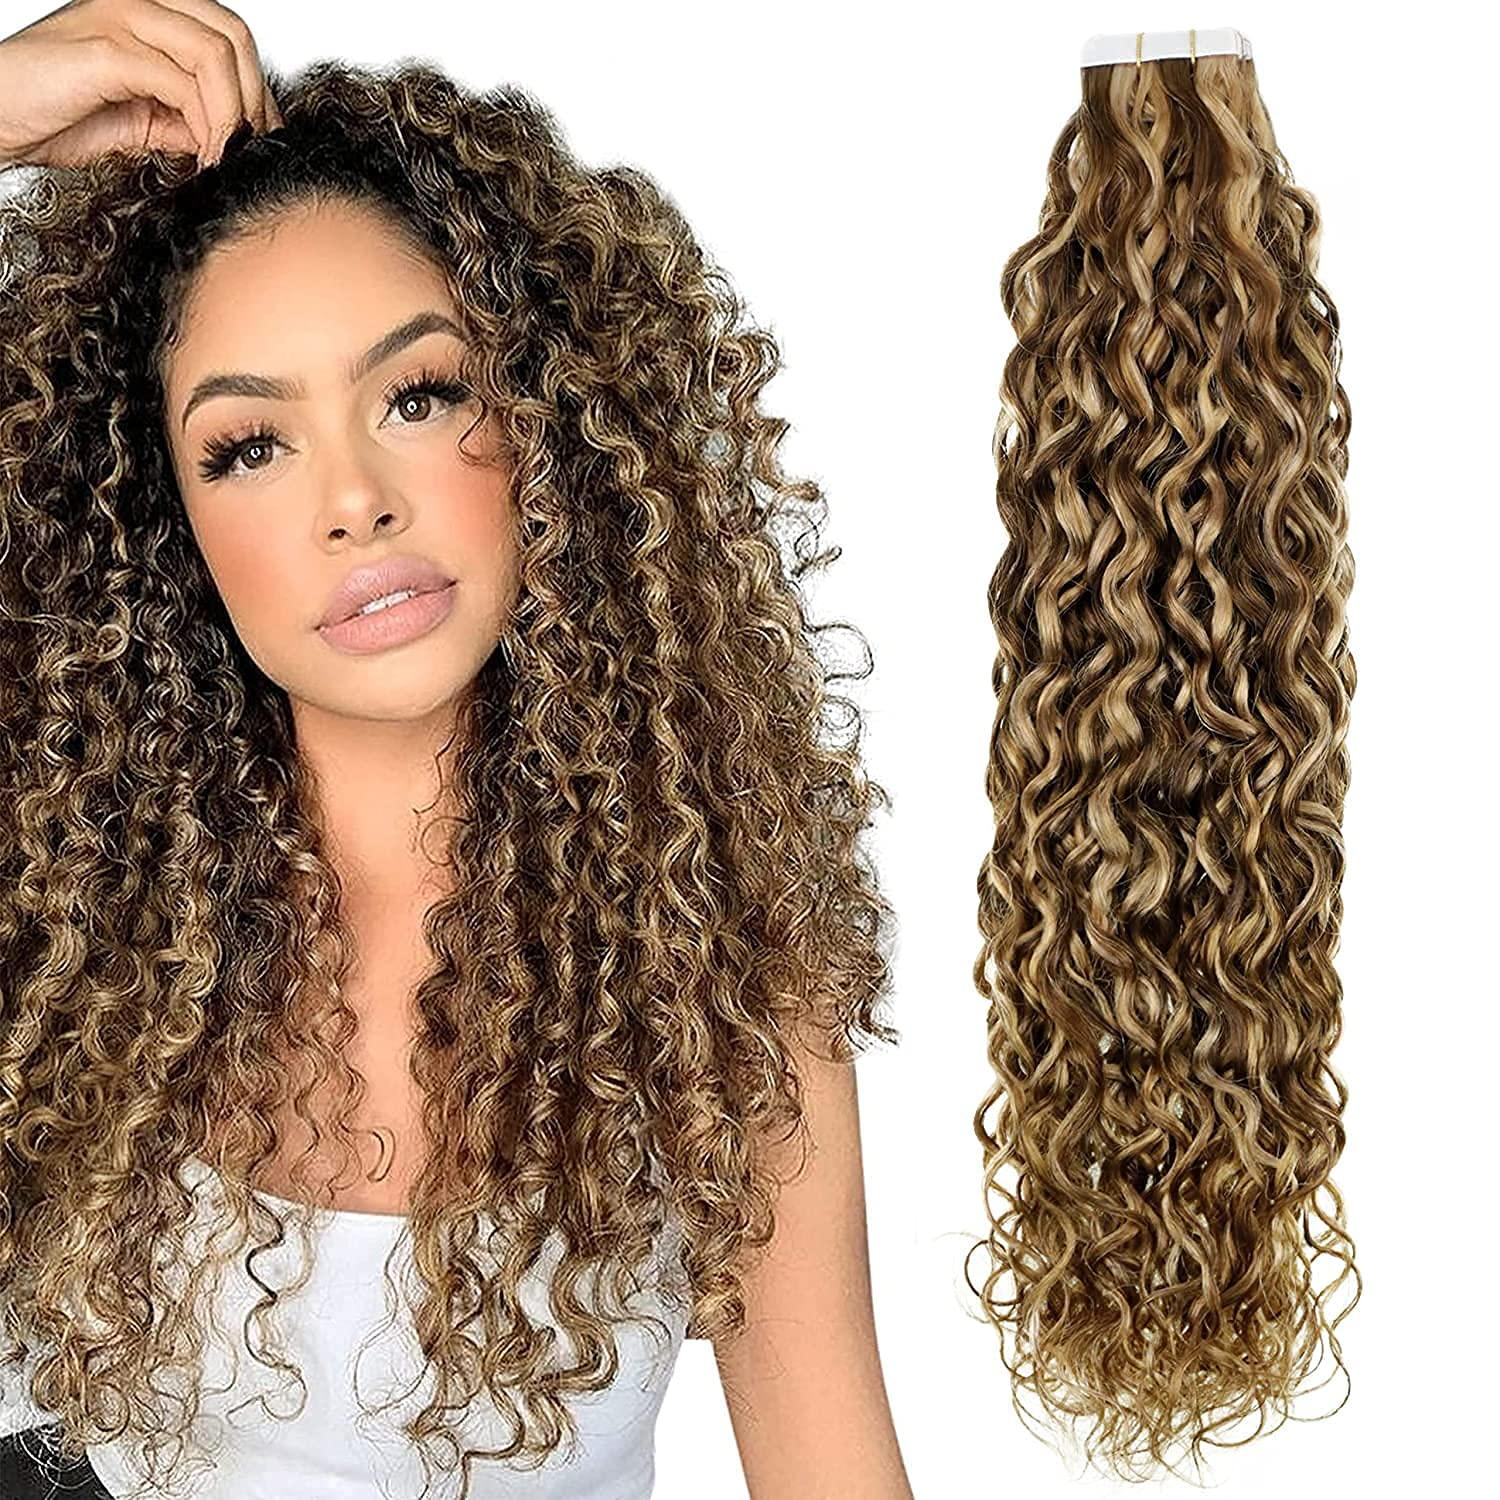 Hetto Blonde 新作 大人気 Tape in Hair Extensions 22 Color #4P27 Inch Curly D AL完売しました。